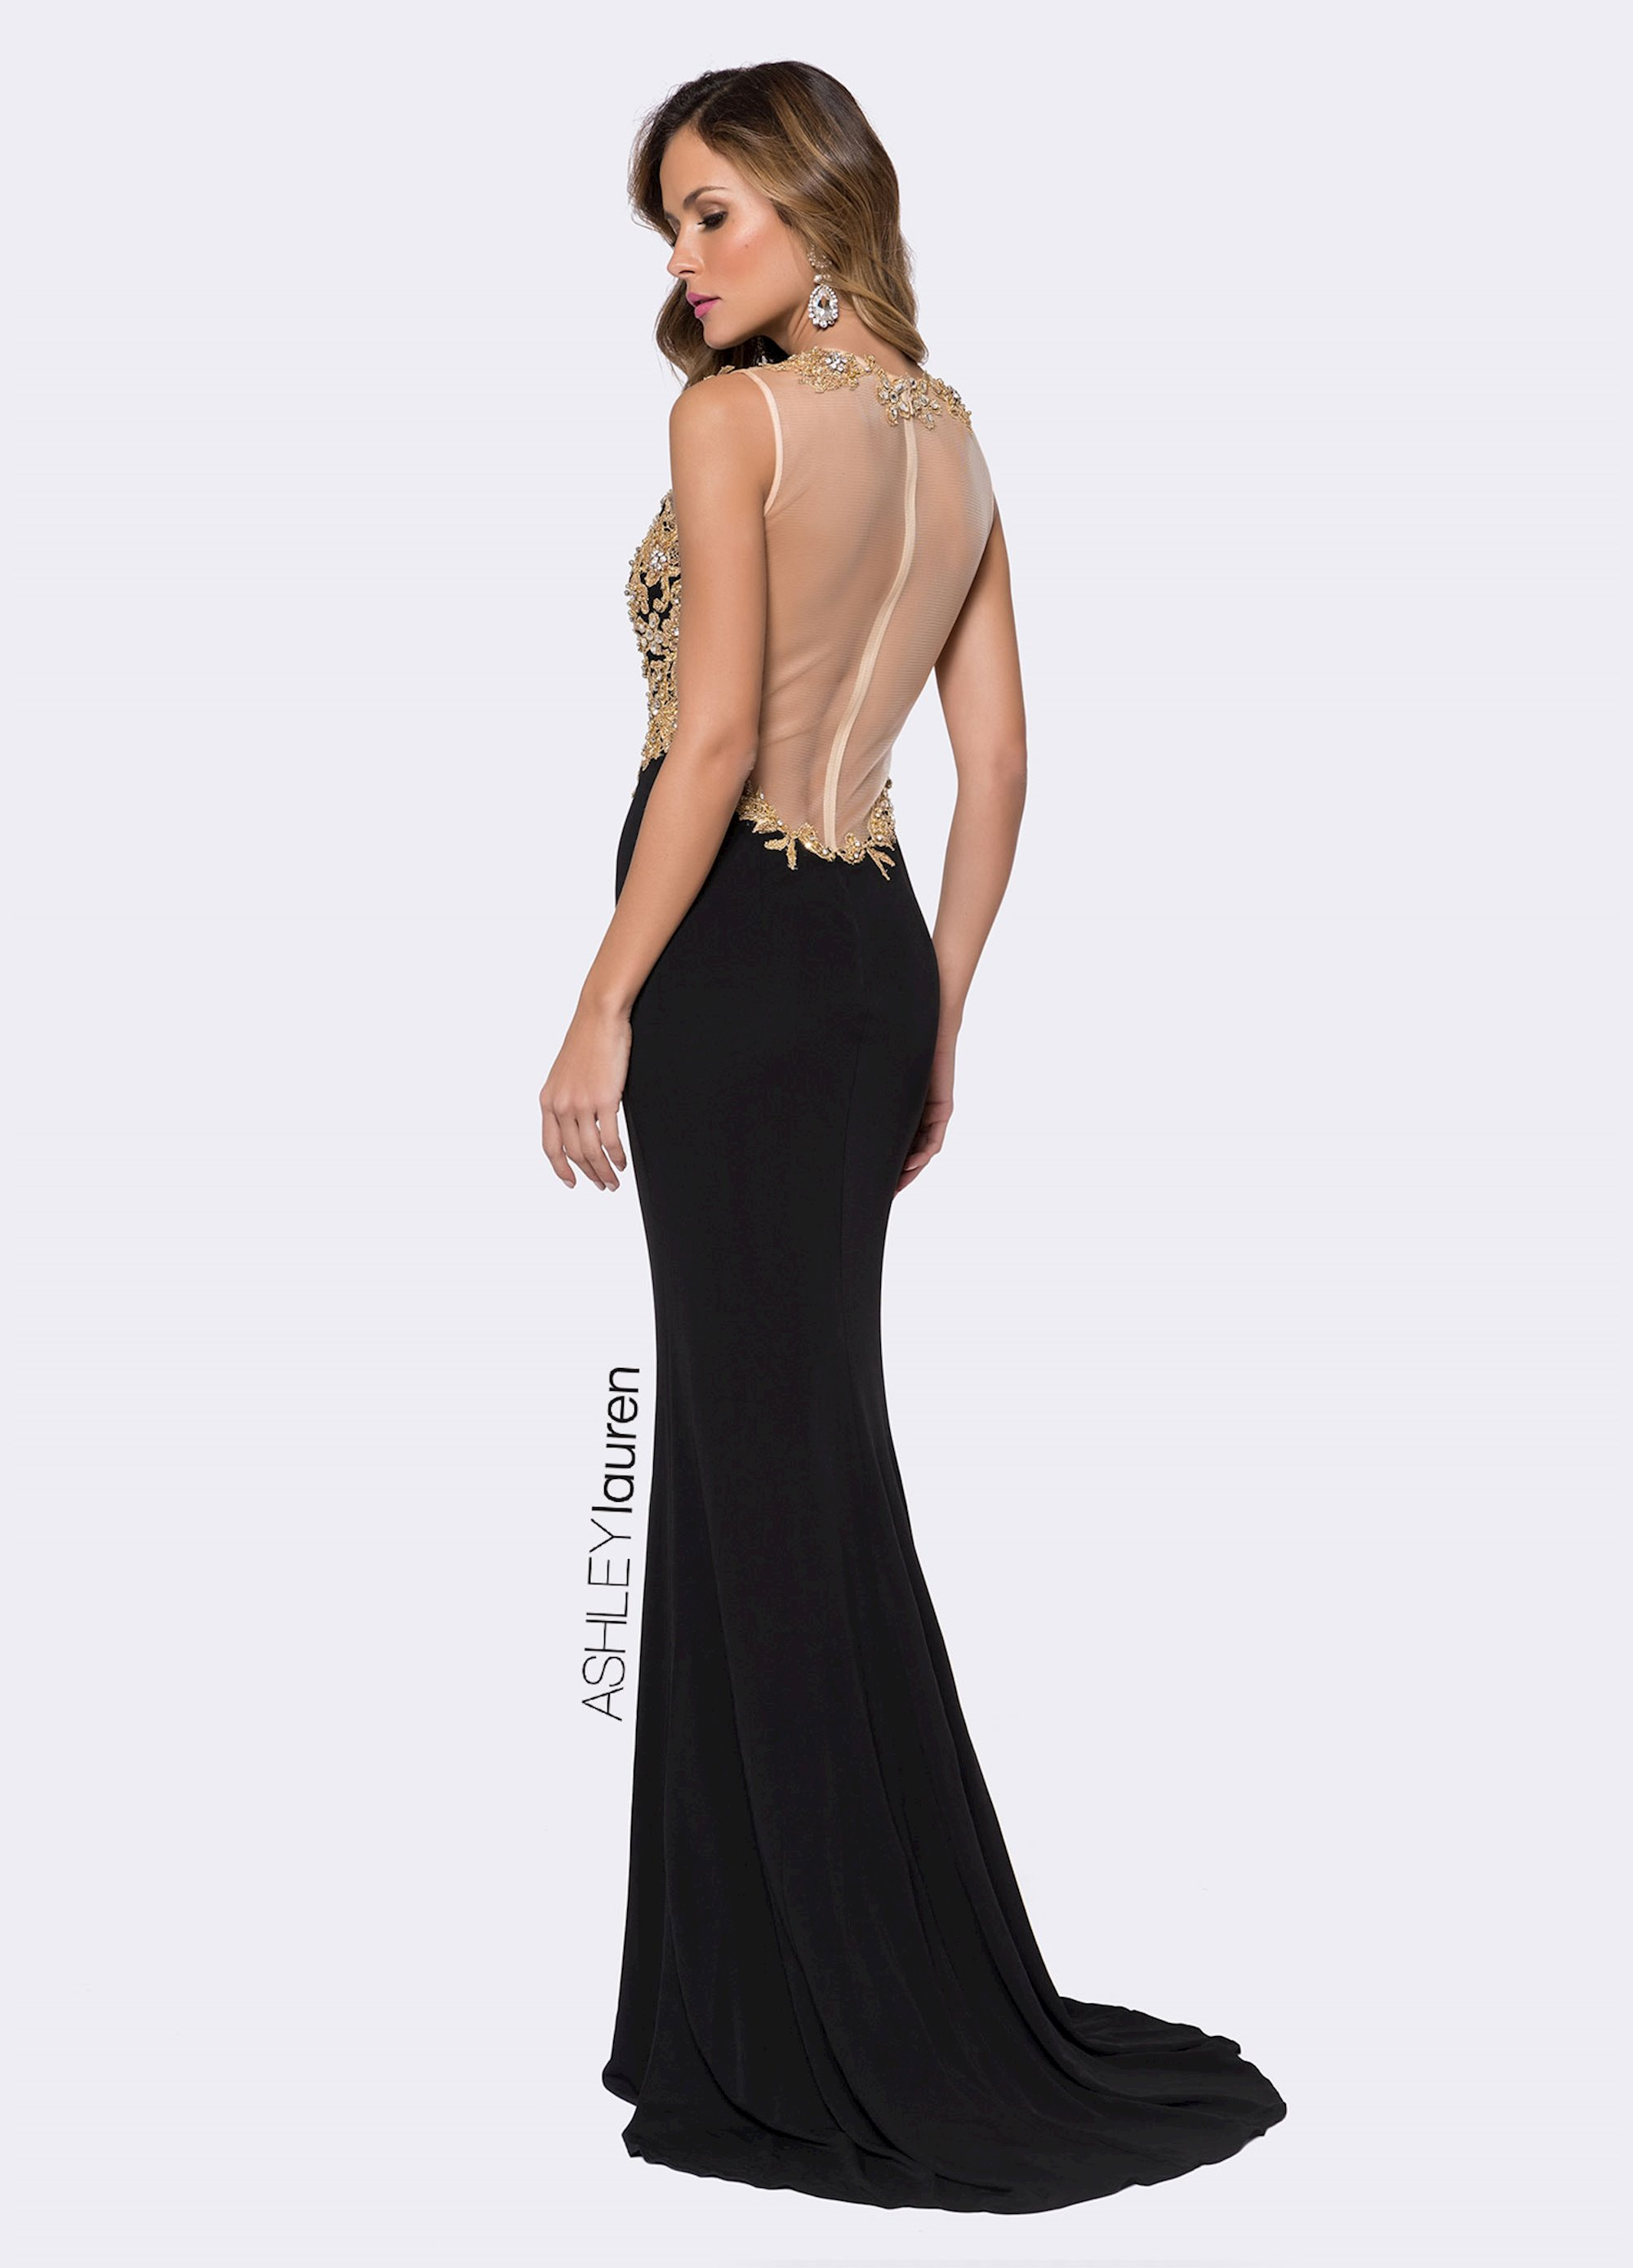 3c6ec7c90f Ashley Lauren Embroidered Jersey Evening Dress. Double tap to zoom